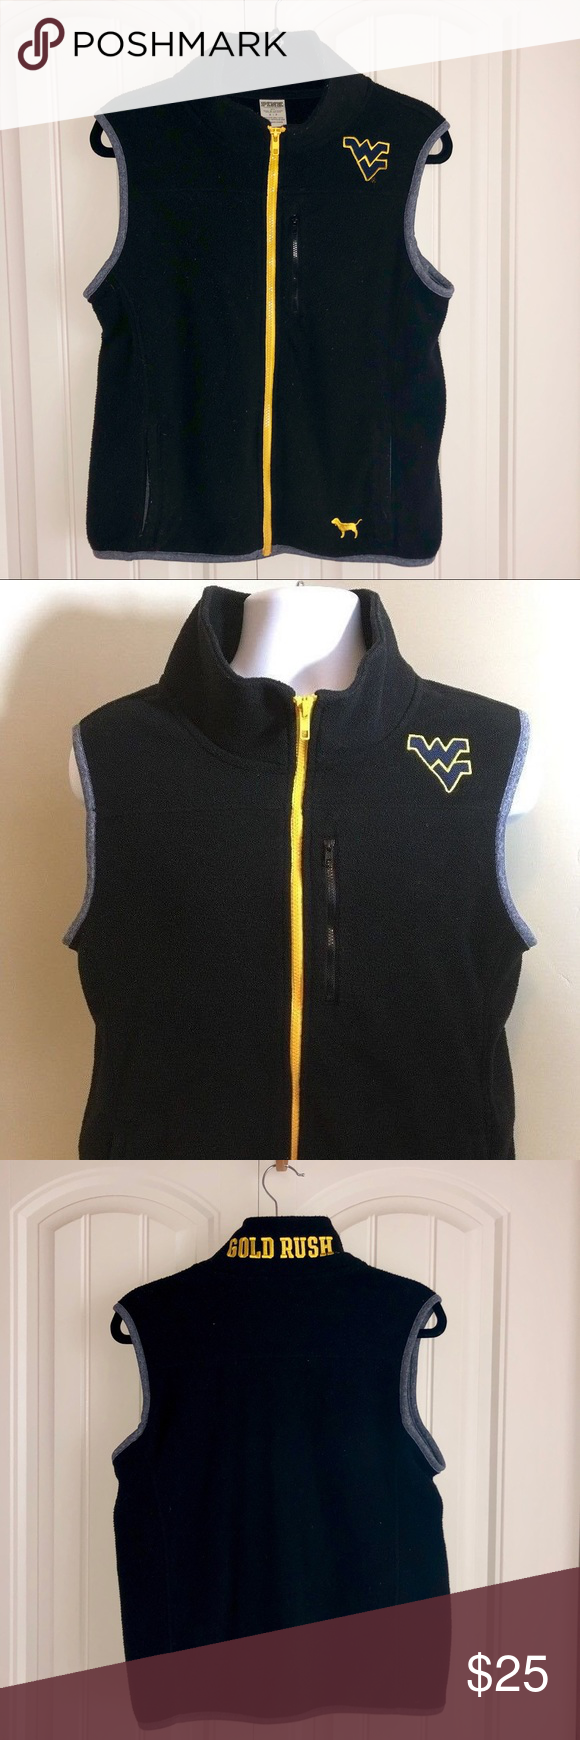 WVU Mountaineers Gold Rush Vest Victorias Secret PINK / 5th Ocean Womens West Virginia University Mountaineers Gold Rush Vest. Embroidered WV logo. Size small. Worn once! Great condition. Zips up and has 3 pockets. Navy blue and yellow gold. PINK Victoria's Secret Tops #wvumountaineers